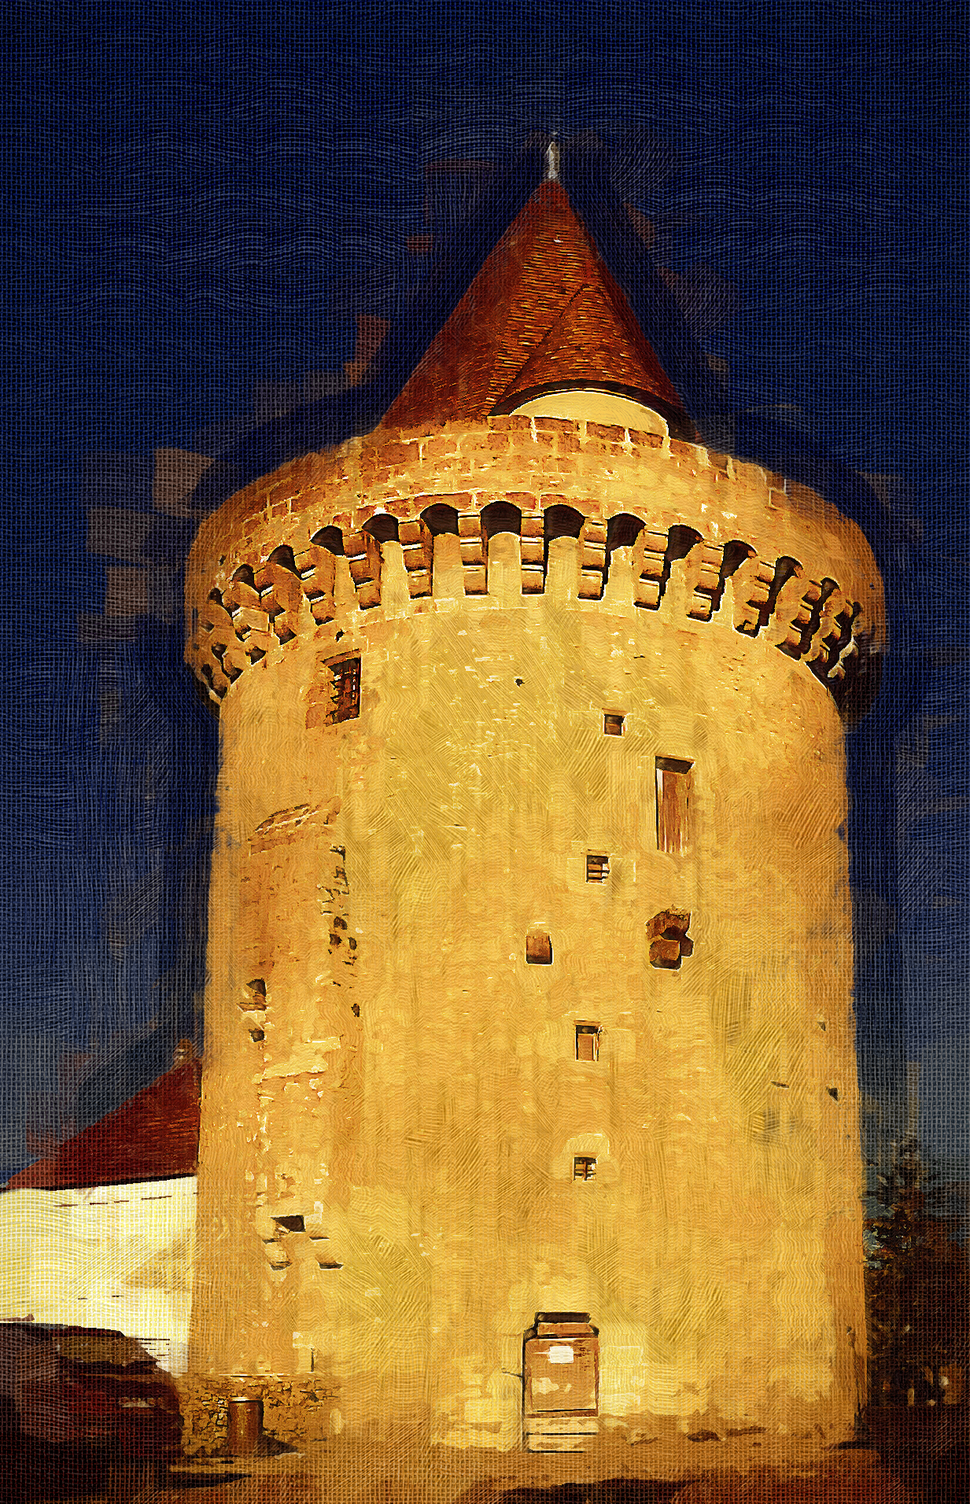 Tour Margarite is the only surviving tower from the original fortifications.